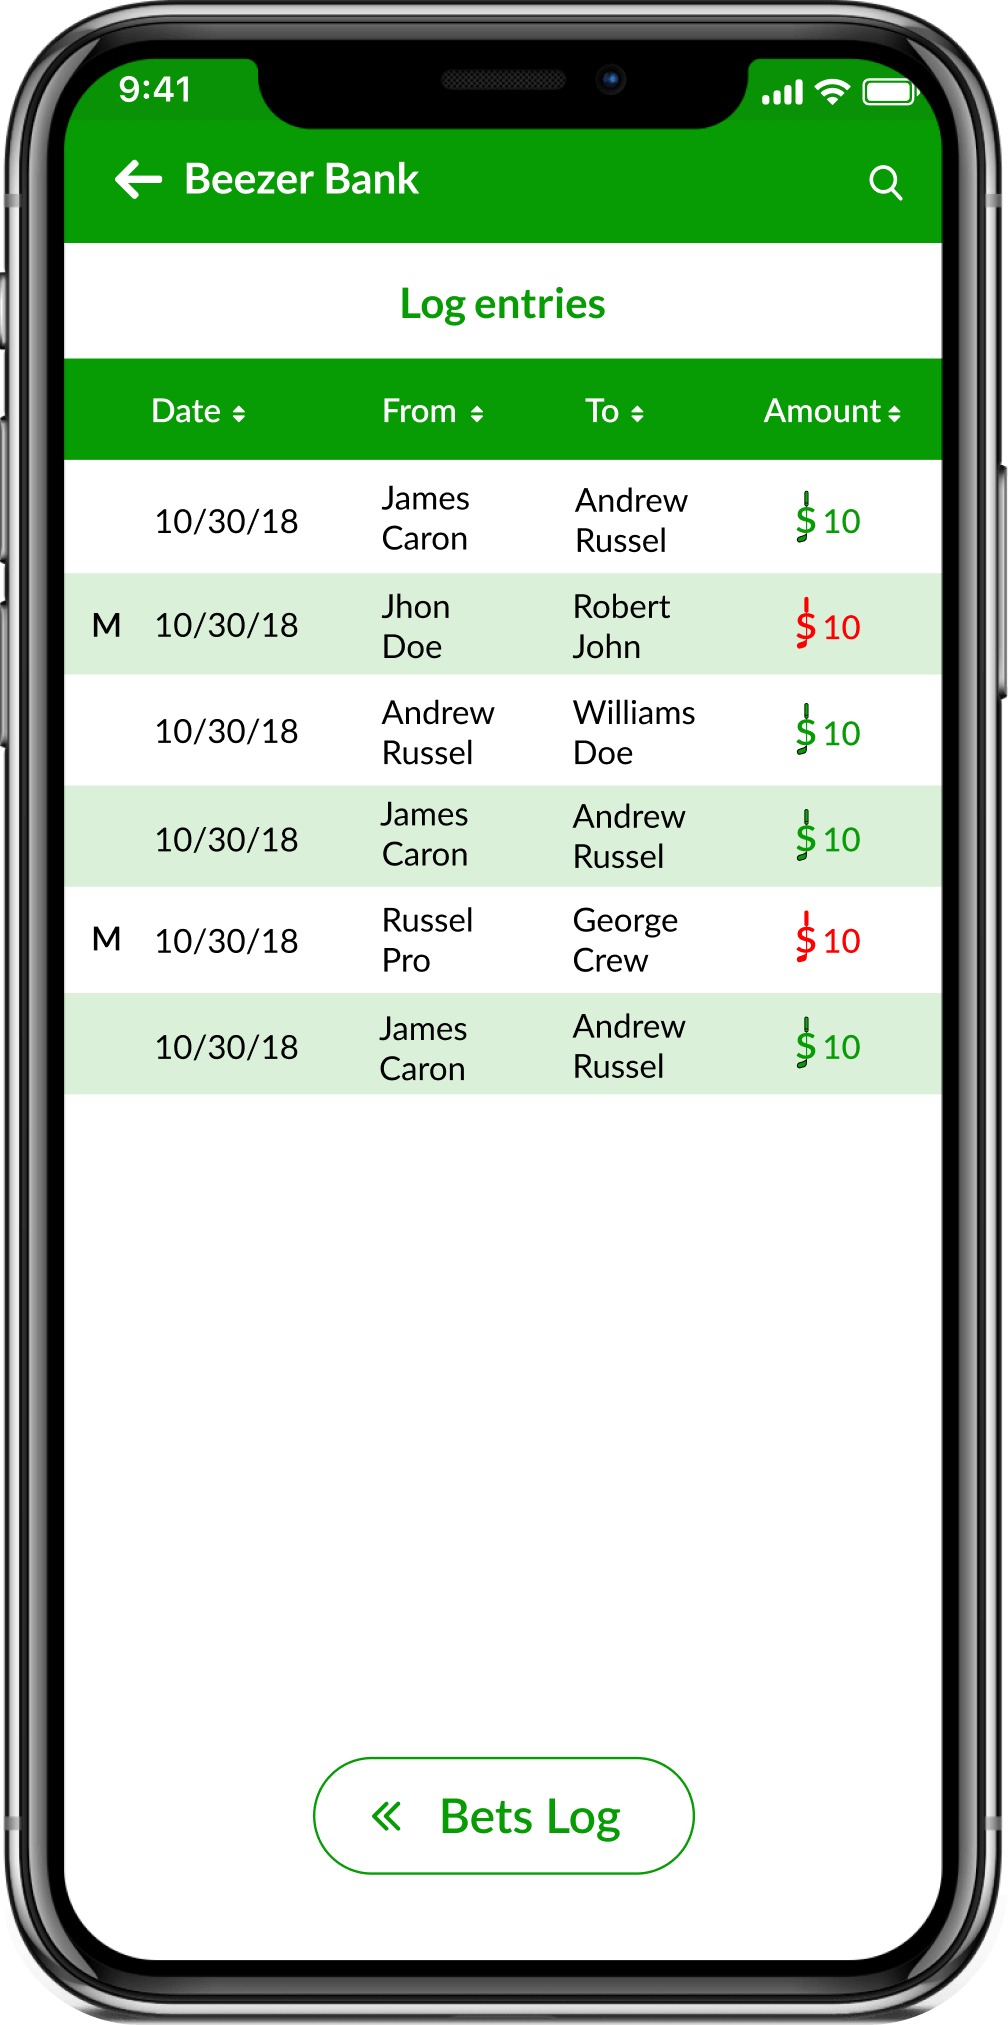 Golf Bets Tracking App screenshot showing the Bets Transactions